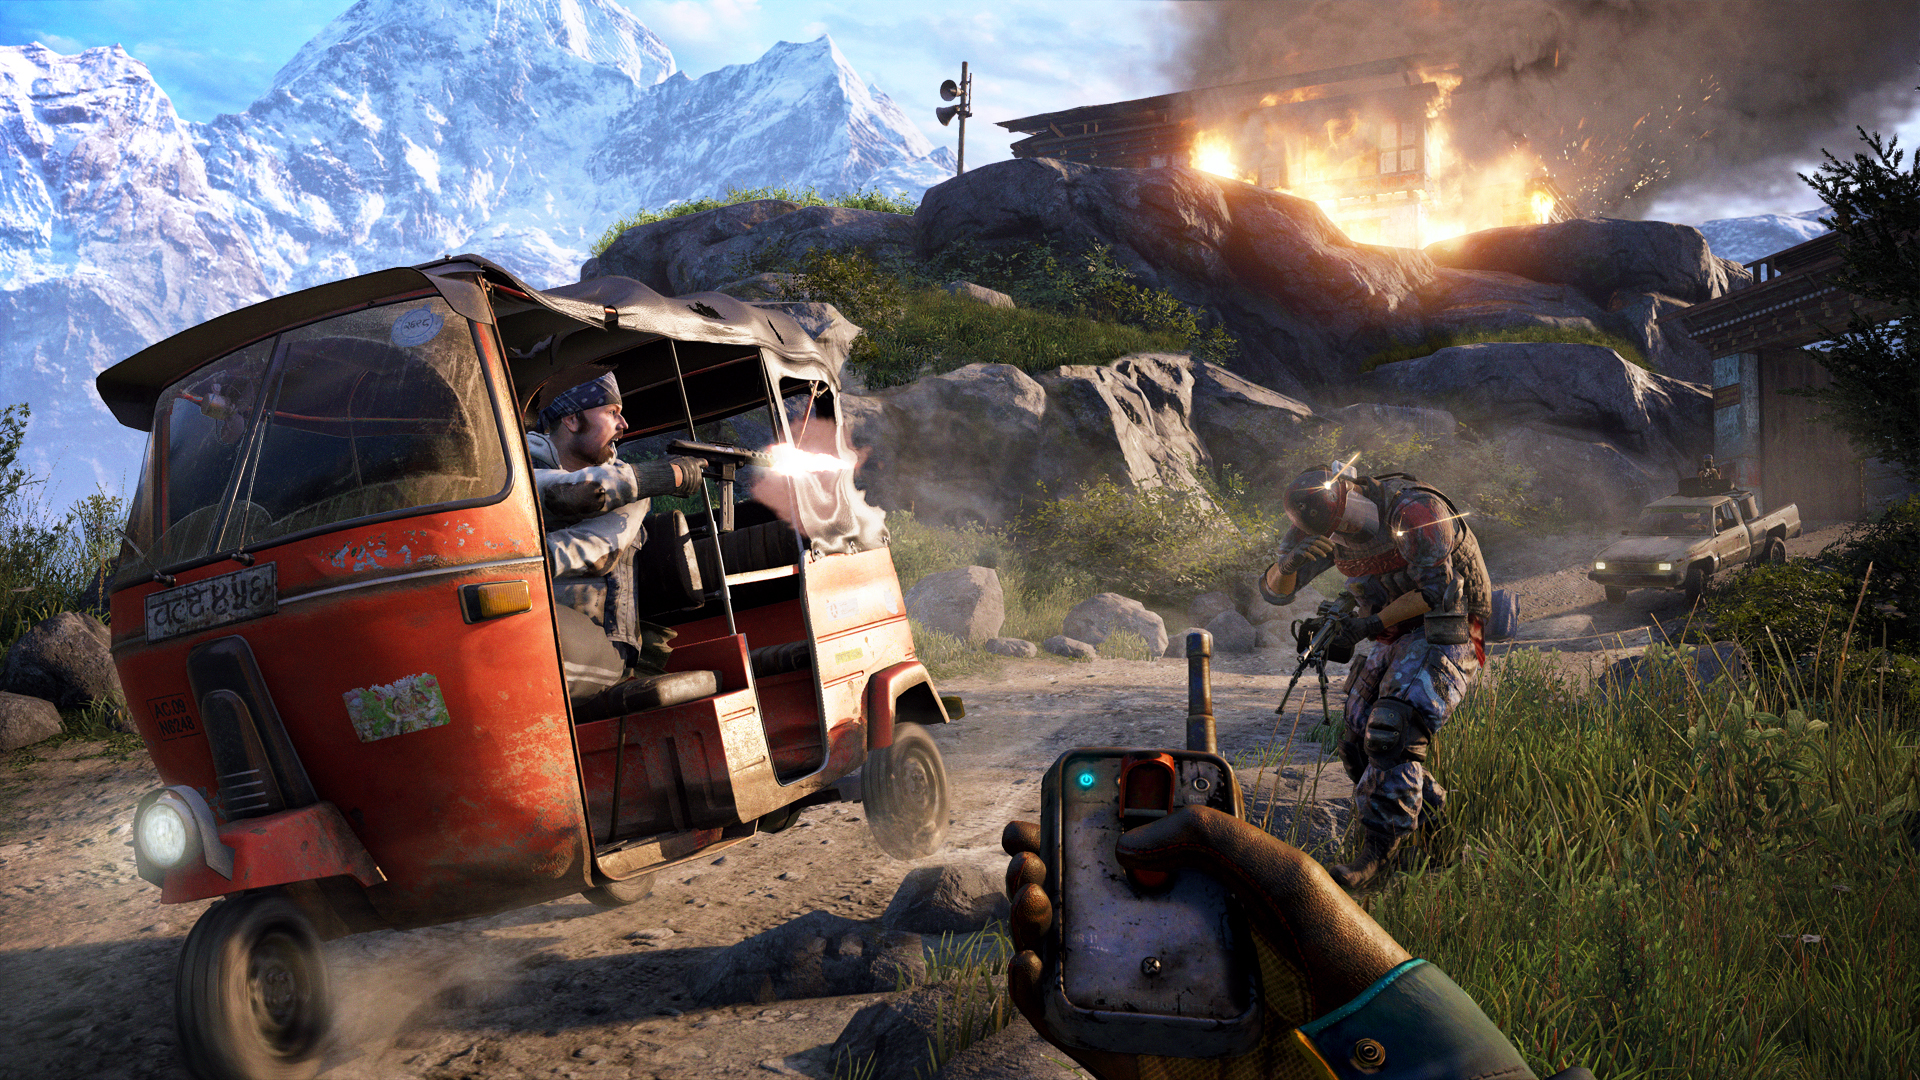 far cry 4 free download torrent file